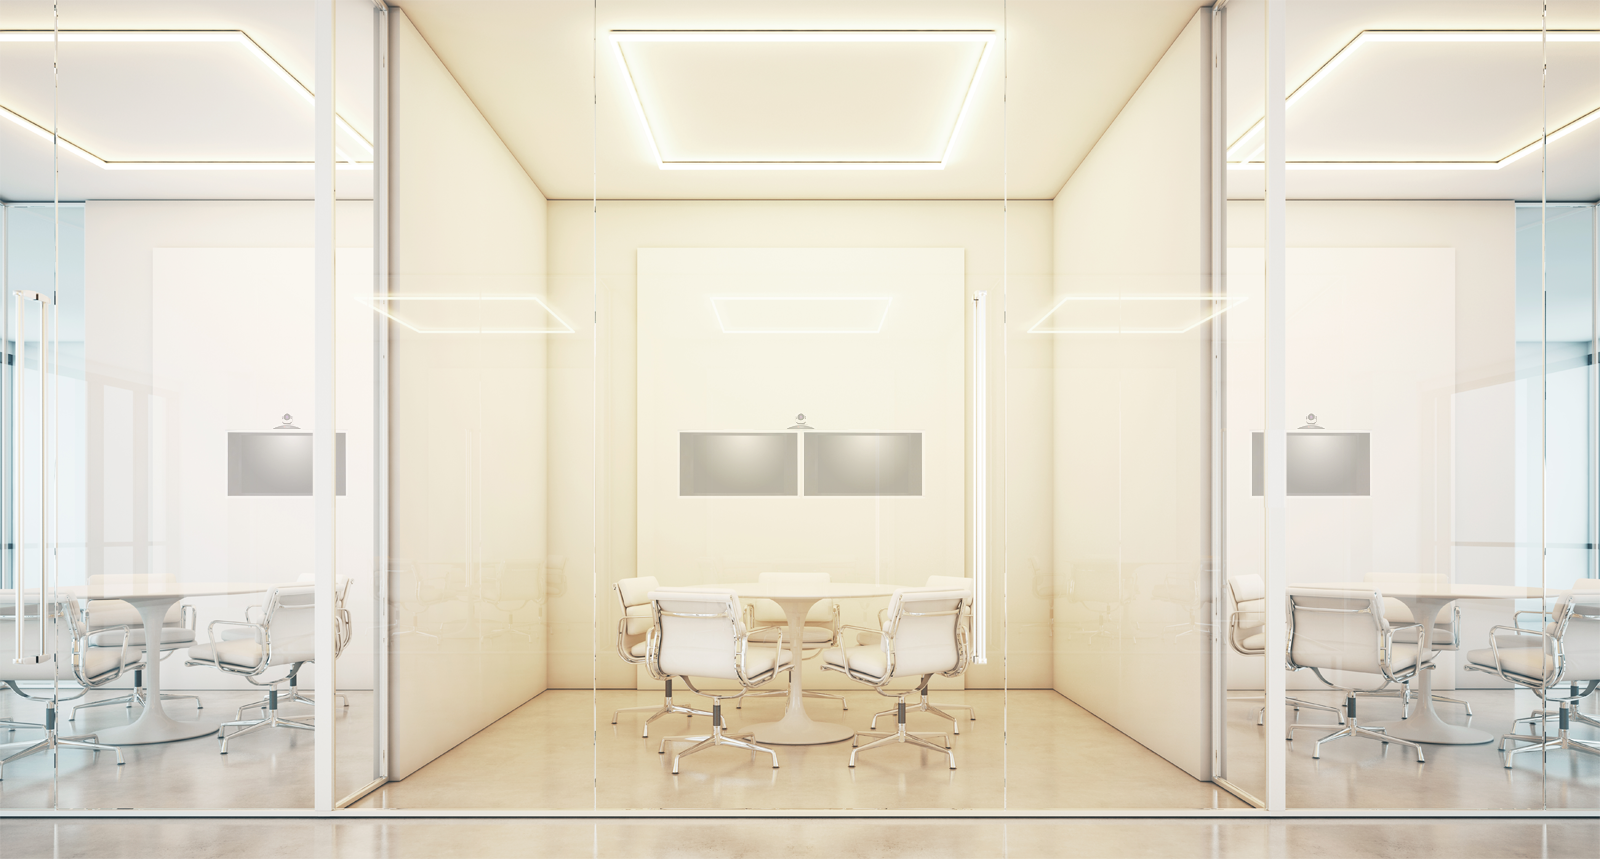 bigstock-Contemporary-Office-Interior-73275004.jpg